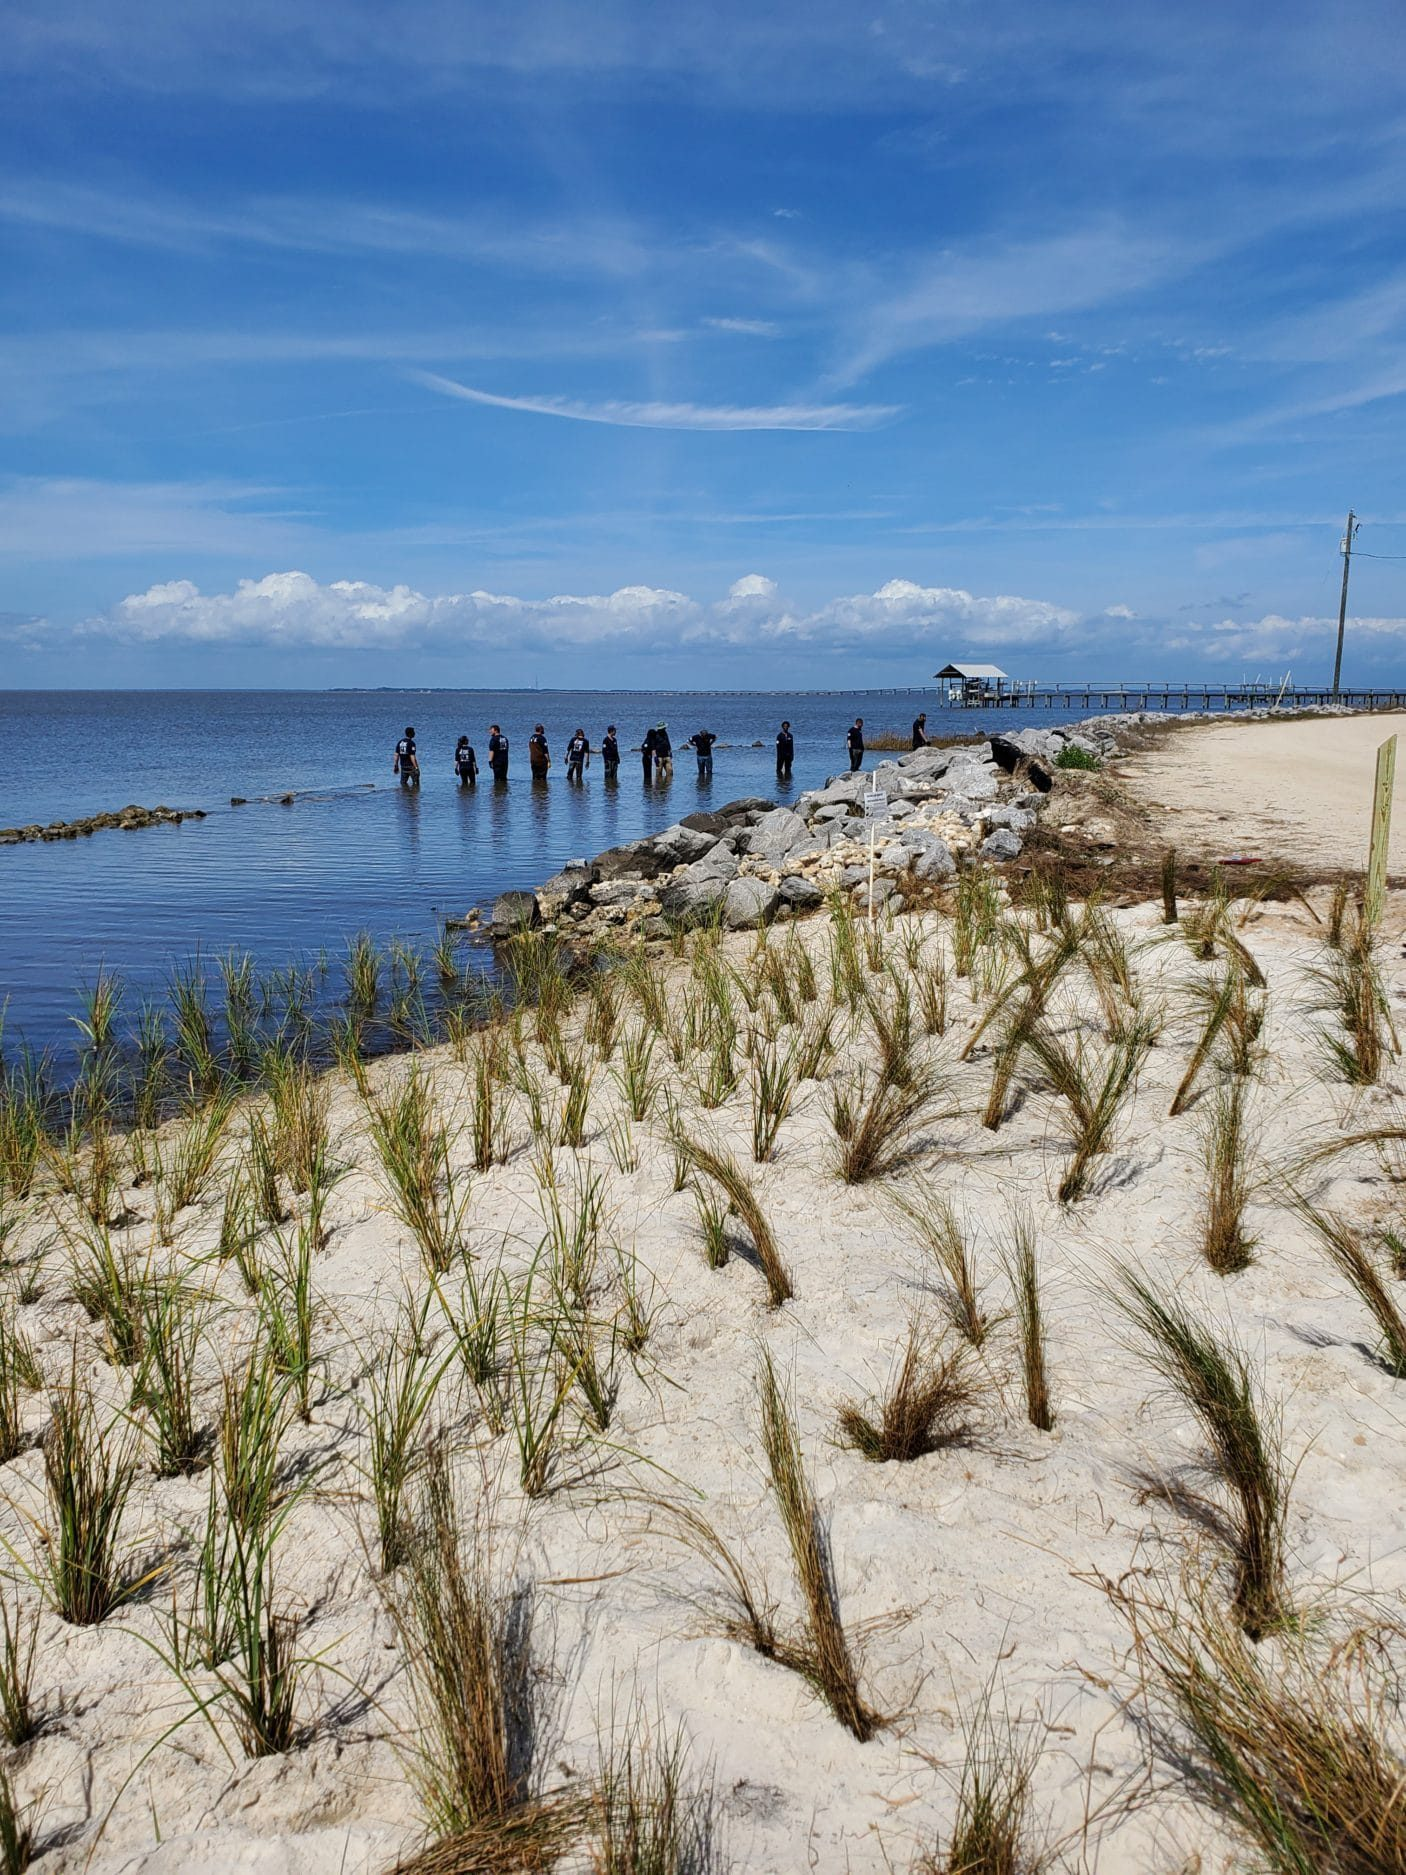 A 250' living shoreline was completed at Sawyer Street with the help of the Conservation Corps. Native marsh plants, were planted to stabilize the shoreline and promote habitat